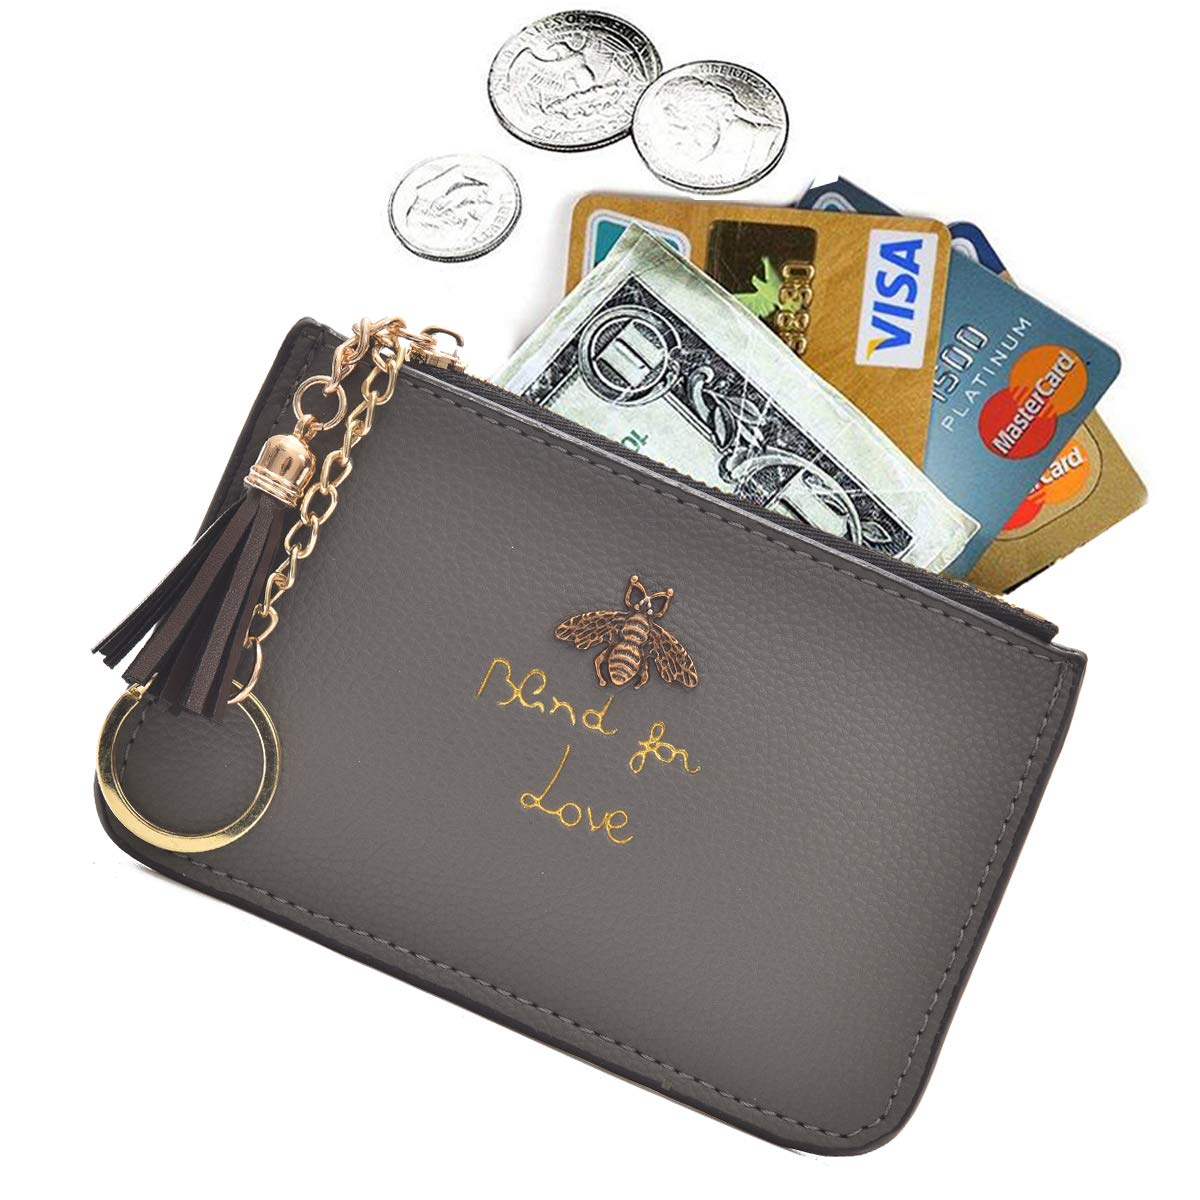 c1f1576565dd AnnabelZ Women s Coin Purse Change Wallet Pouch Leather Card Holder with Key  Chain Tassel Zip